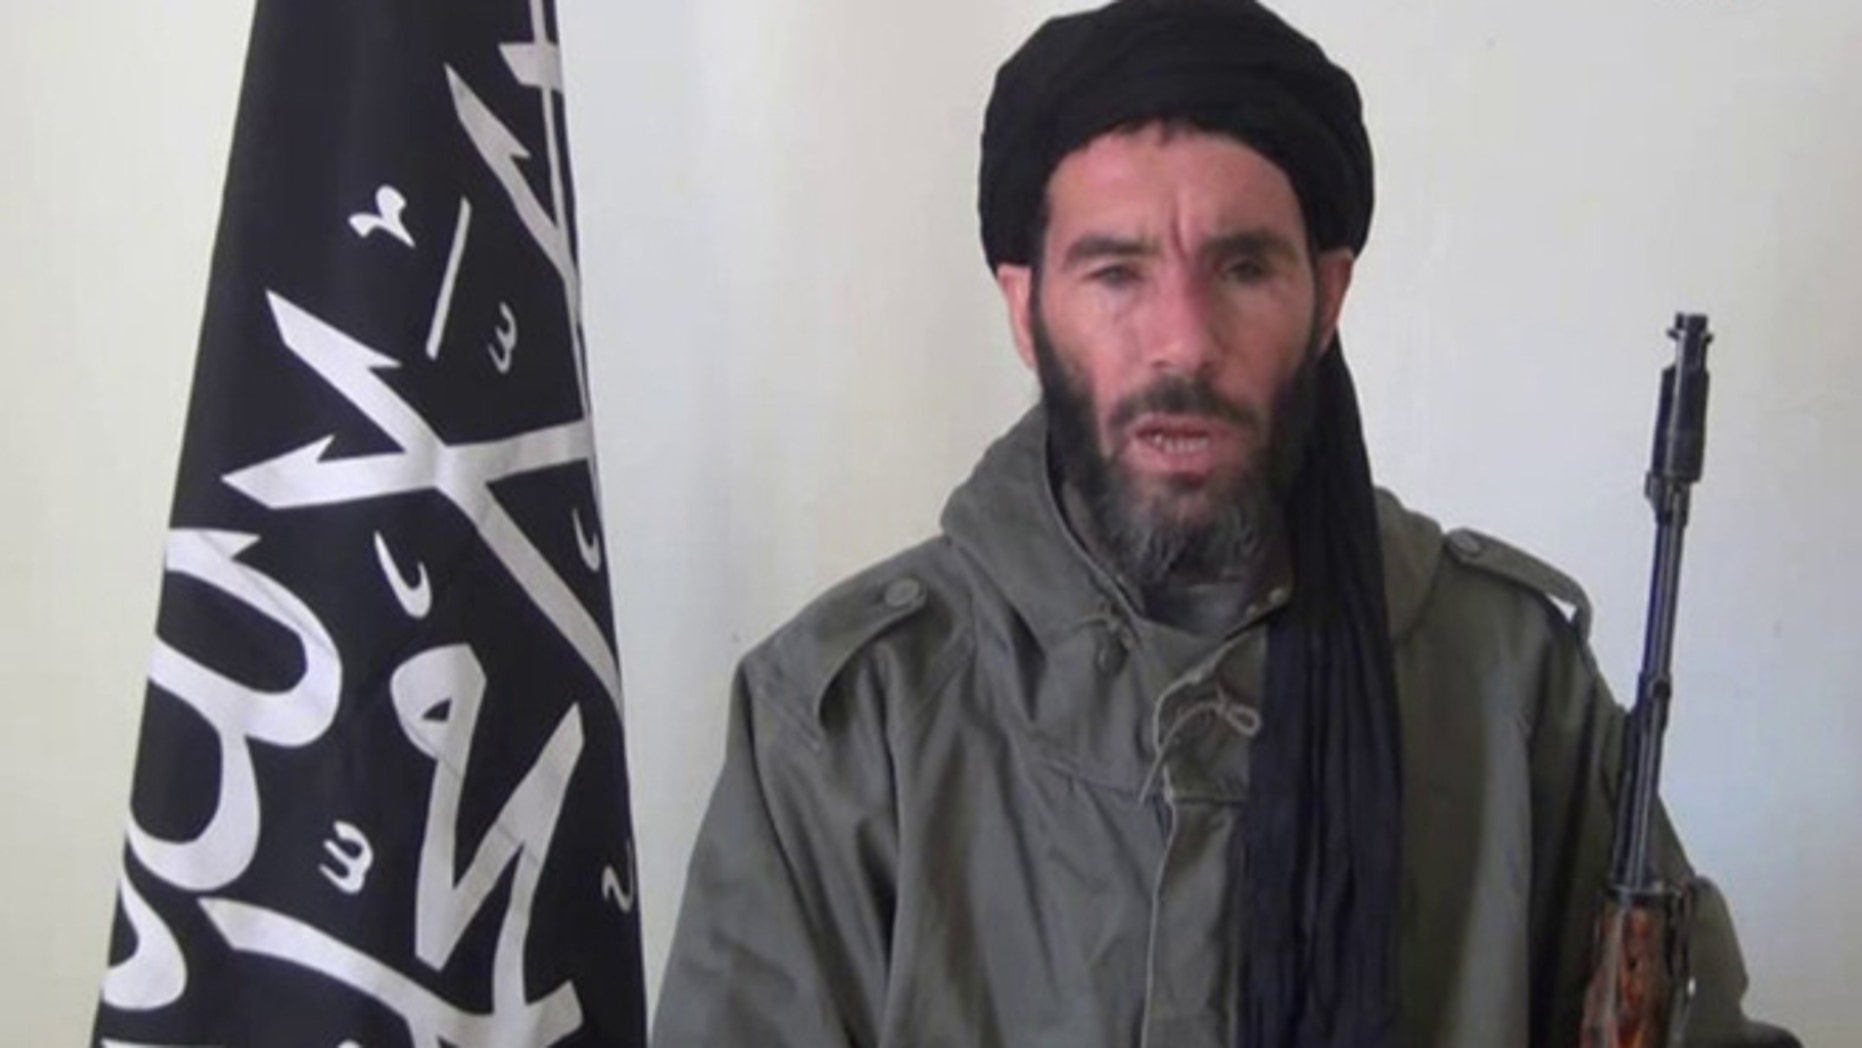 Jan. 17, 2013: In this undated file image taken from video provided by the SITE Intel Group and made available, purports to show terrorist leader Moktar Belmoktar. The one-eyed terror leader Moktar Belmoktar, who is considered by many to be the most dangerous man in the Sahara, is now officially joining forces with a Mali-based jihadist group and vowing to stage attacks in Egypt, according to a statement posted Thursday, Aug. 22, 2013 on a Mauritanian web site.